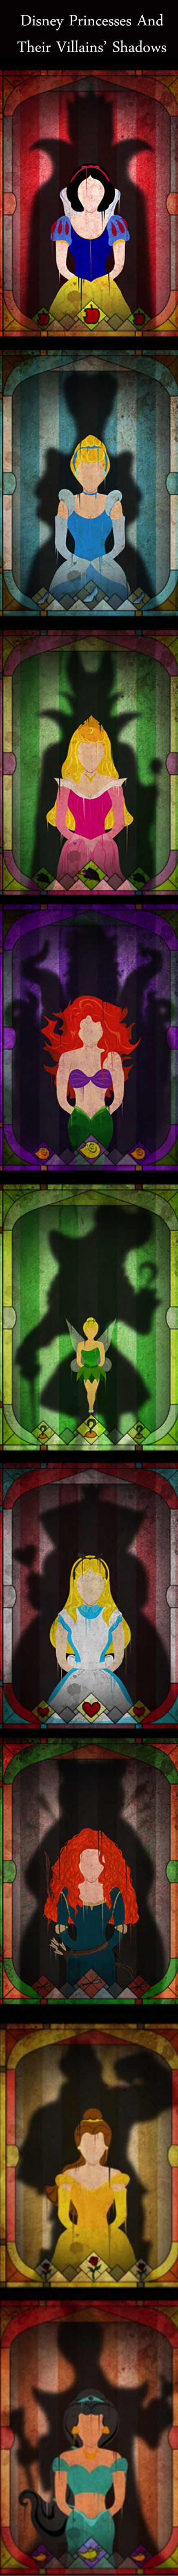 disney princesses haunted by their villians shadows